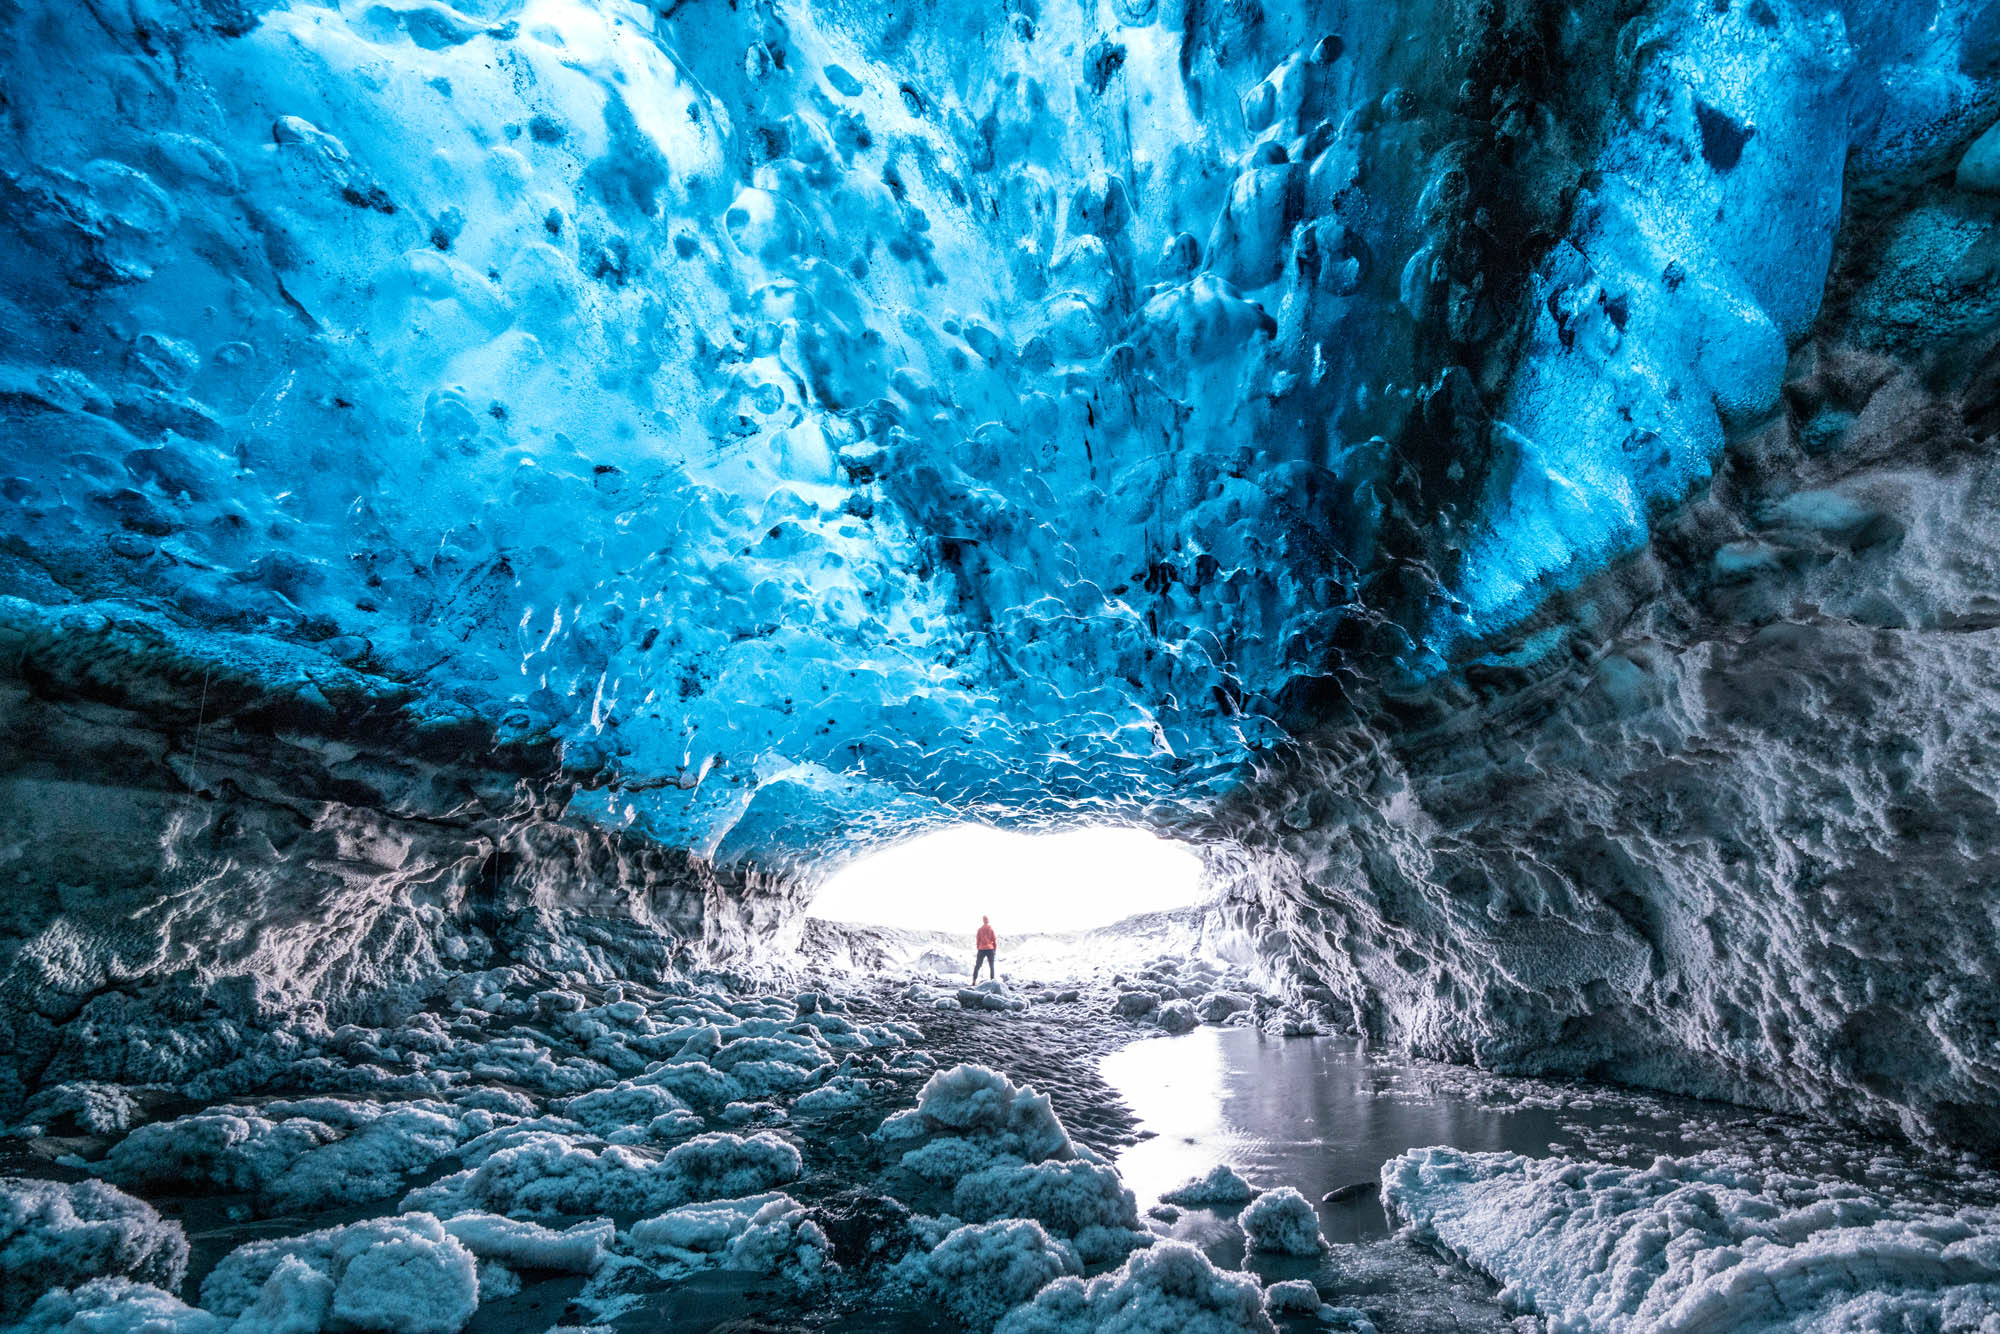 iceland ice cave tour from jokulsarlon